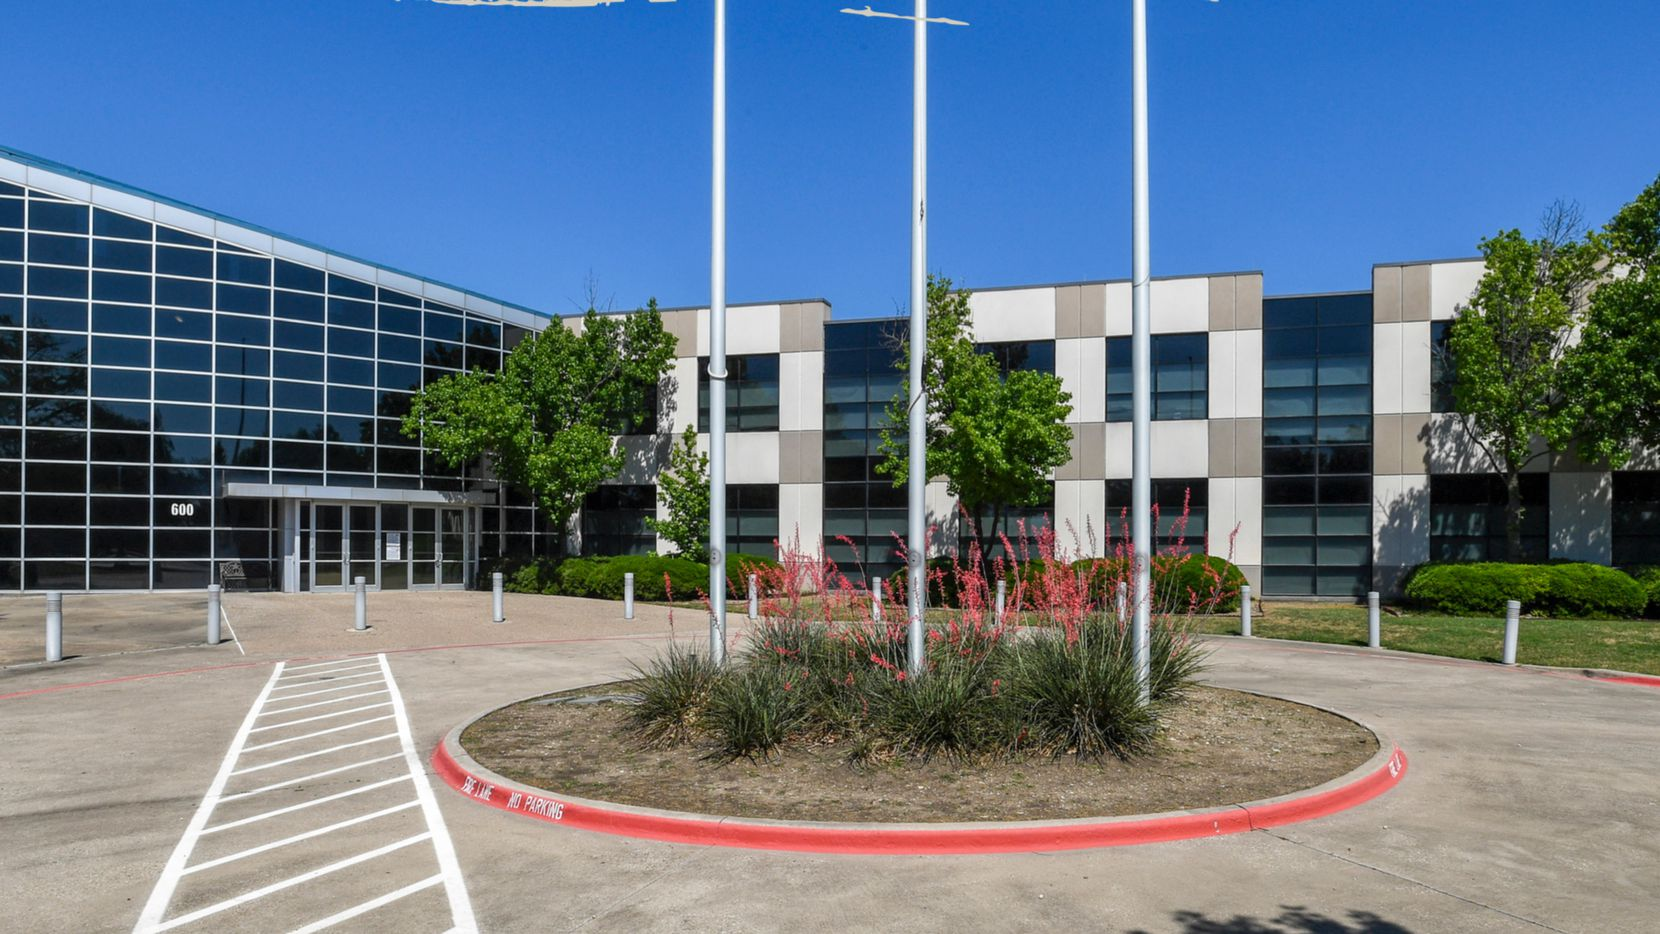 The 14-acre campus has been one of the largest vacant business facilities in Allen.